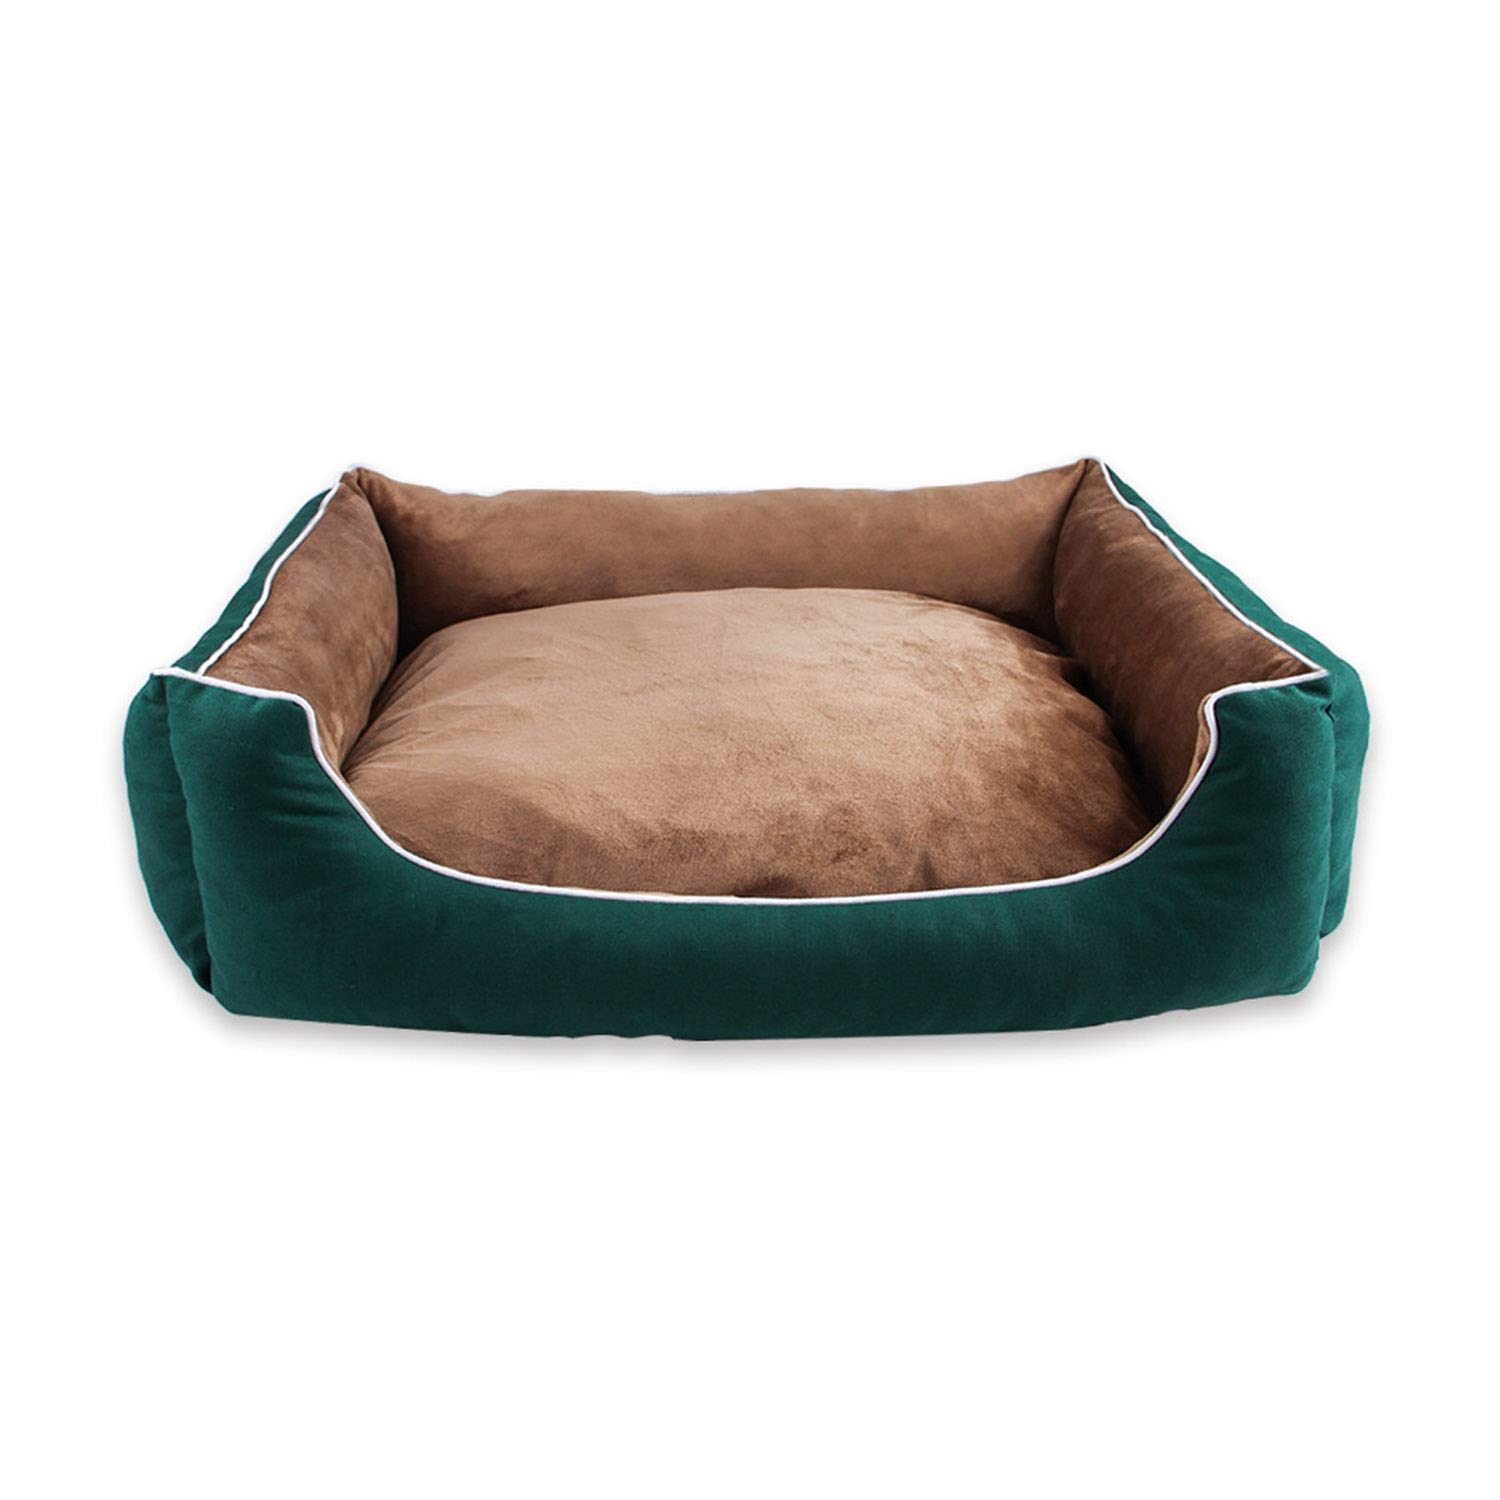 Green S Green S Sile Pet Bed, Indoor Washable Pet Soft Cushion Moisture Proof Oxford Cloth Pet Sofa Comfortable Breathable SL-021 (color   Green, Size   S)